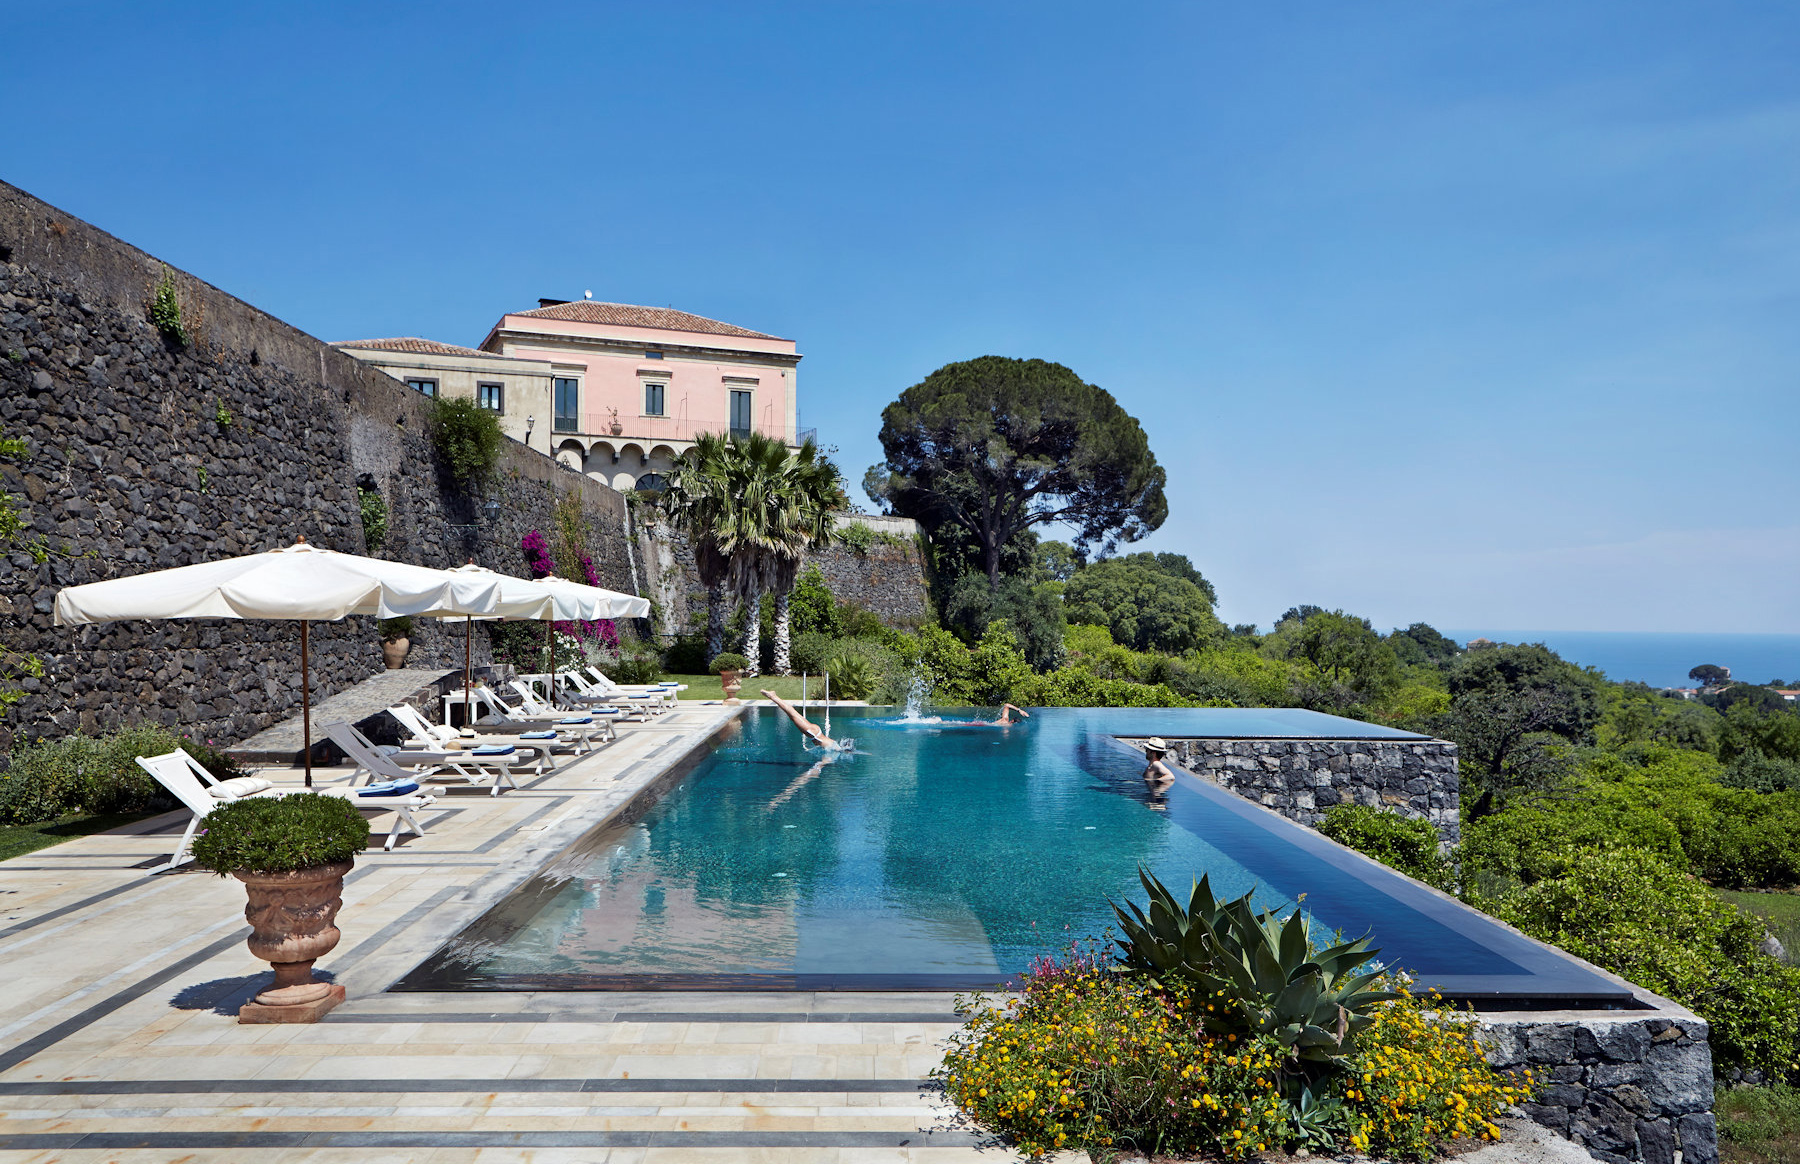 Lemen Huis Grand Design Holiday Home Of The Week A Restored Sicilian Villa With